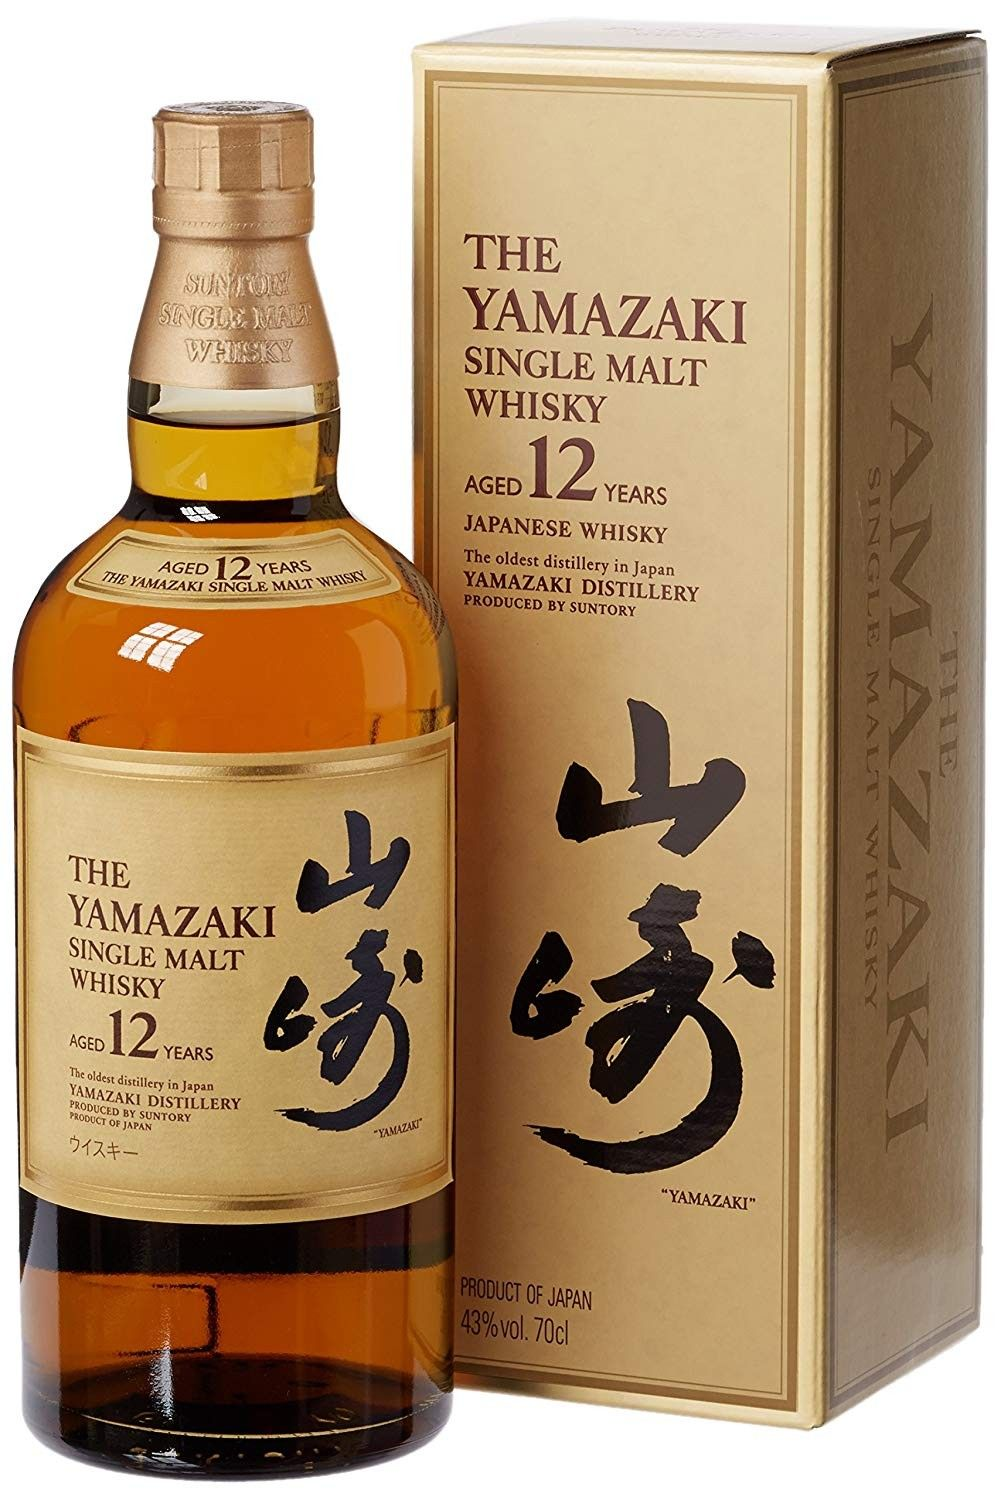 Suntory The Yamazaki Single Malt Whisky 12 Years Old 70cl Gift